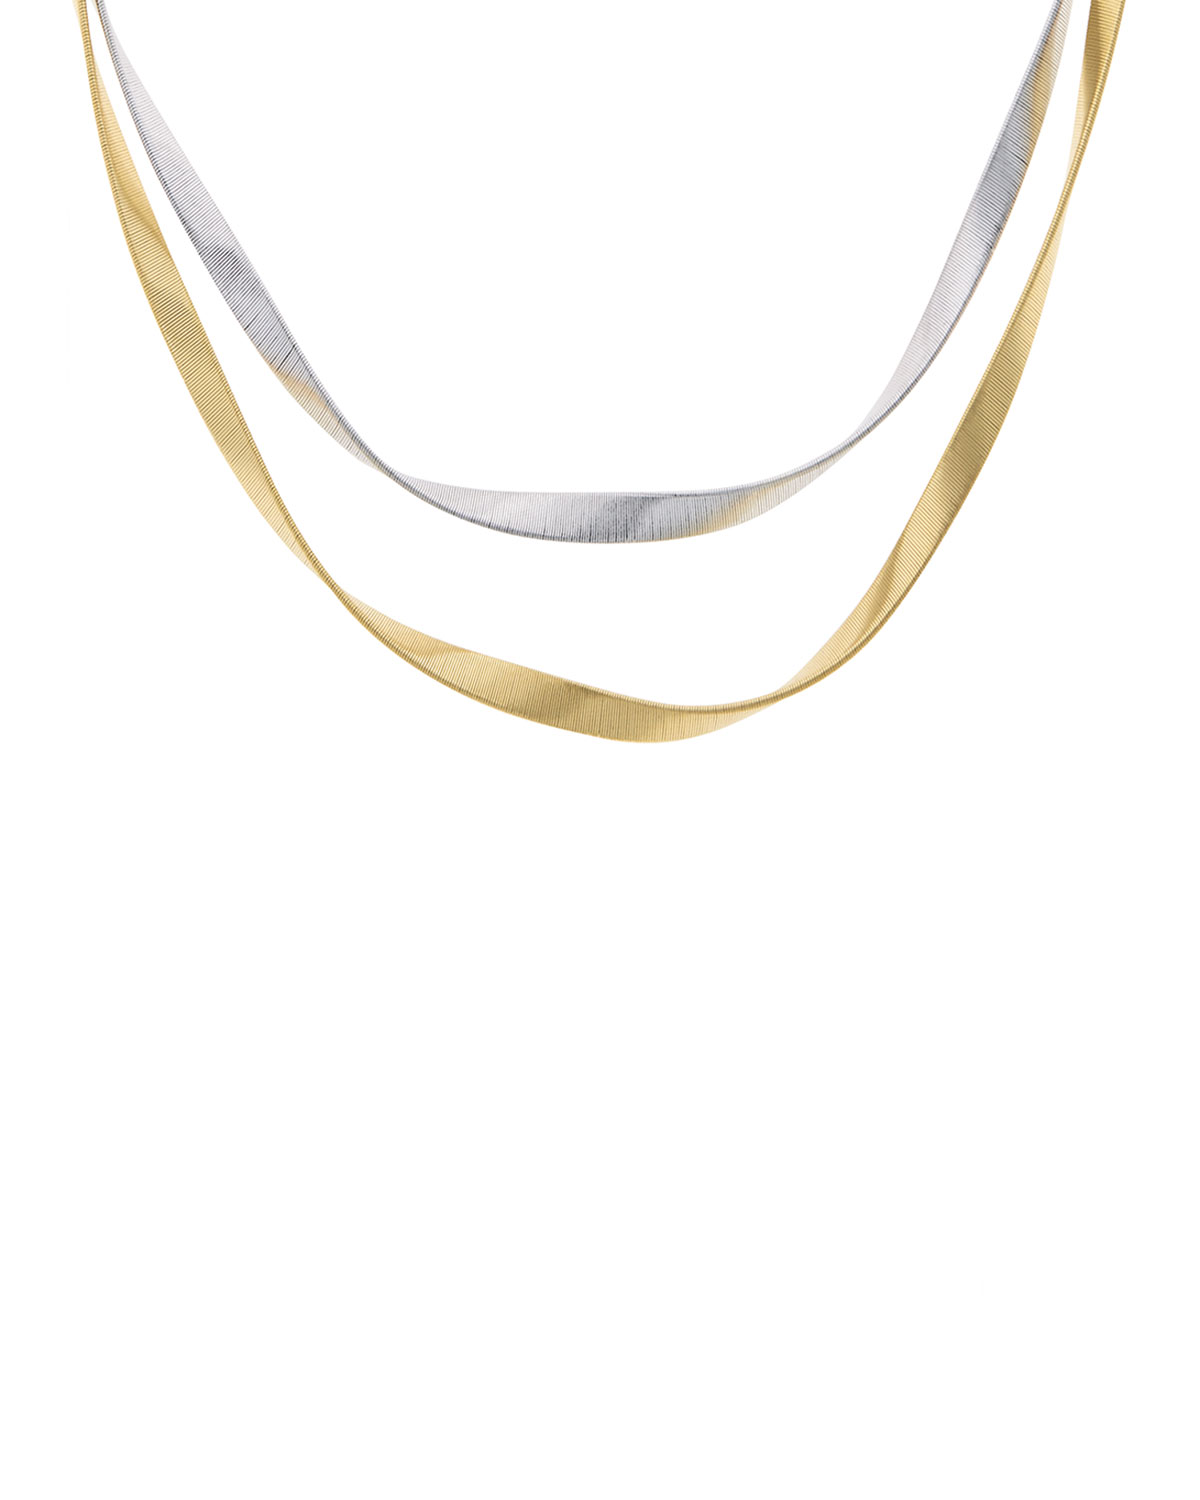 78cda1ebae61d4 Marco Bicego Marrakech Supreme Twisted 18K Gold Necklace | Neiman Marcus